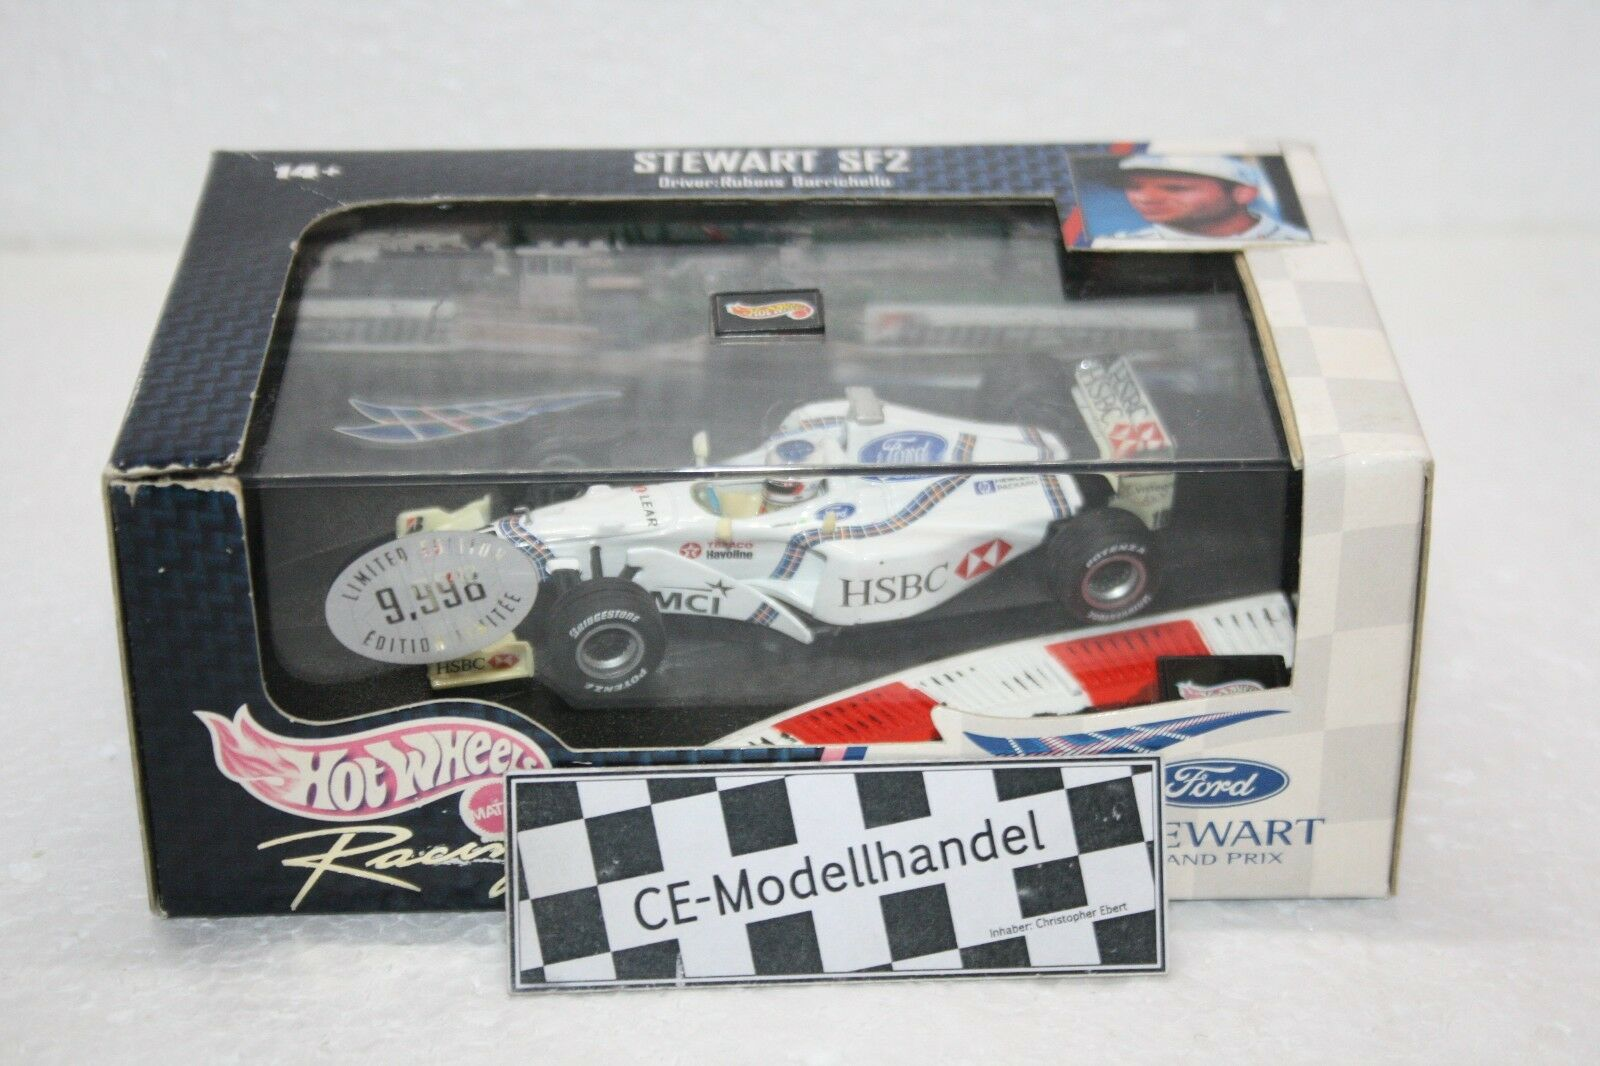 Steward SF2 R. Barrichello • 1998 • HotWheels • 1 43